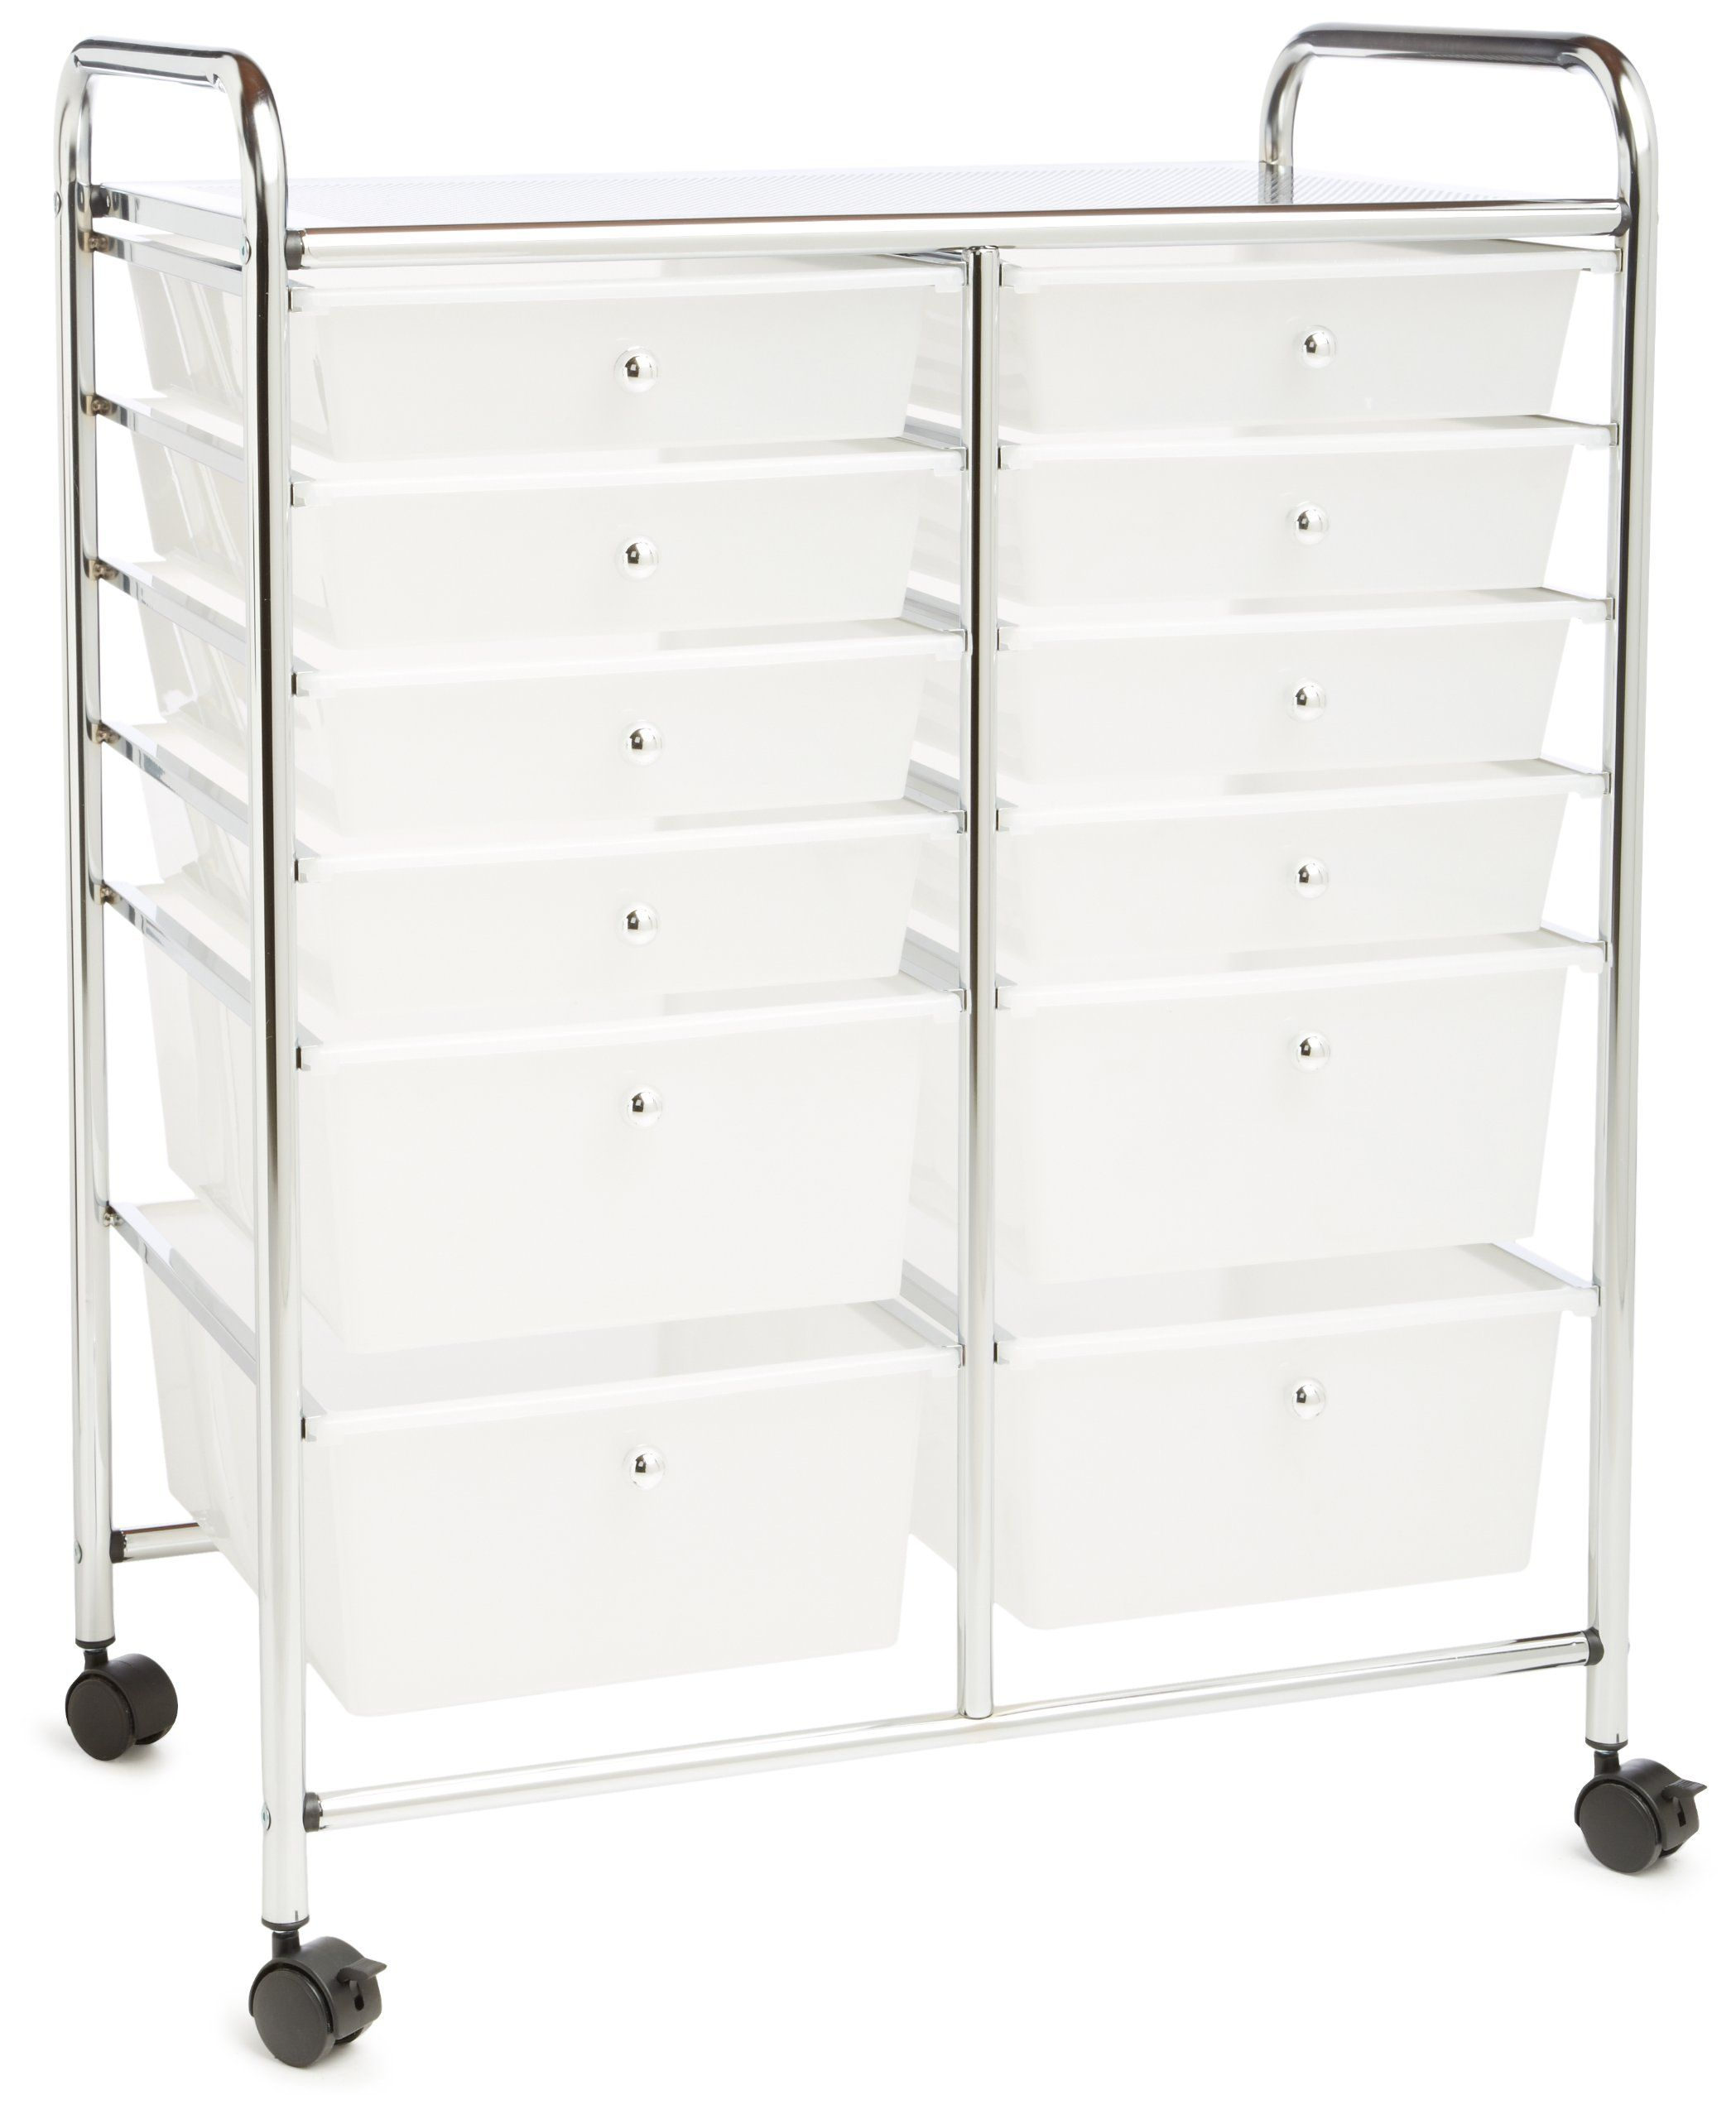 Honeycando Rolling Storage Cart And Organizer With 12 Plastic Drawers